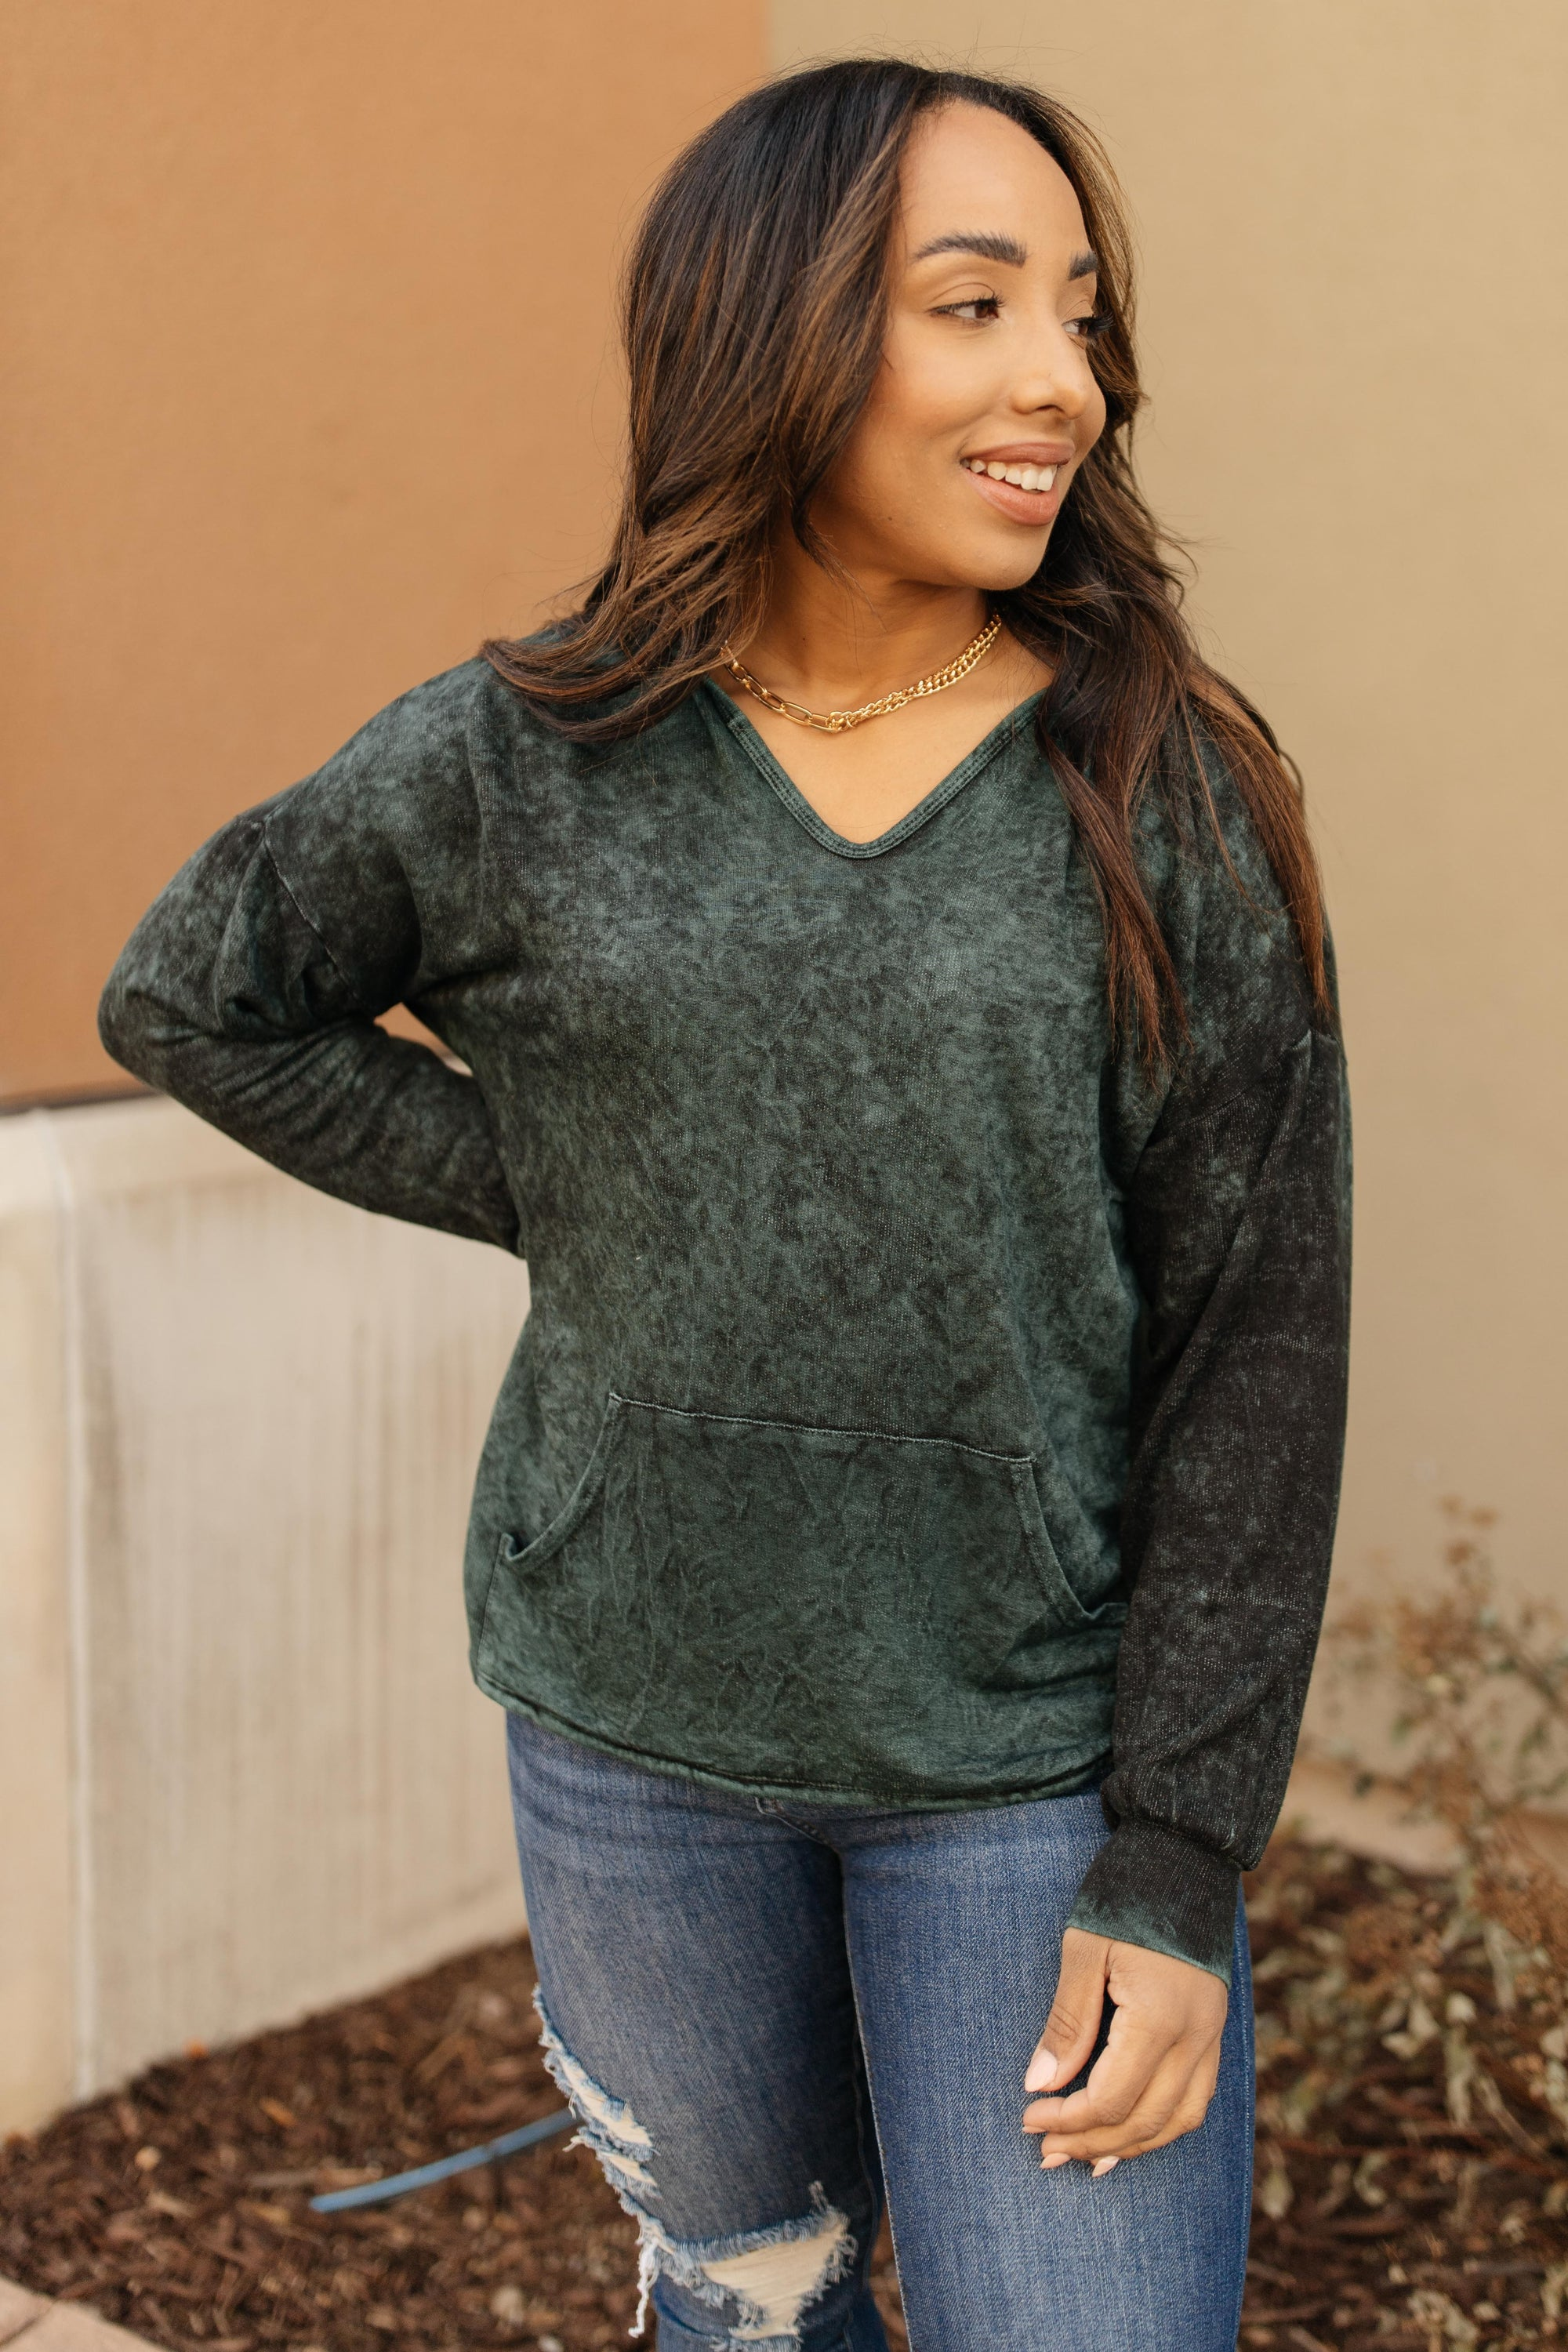 A Cozy Hooded Top in Hunter Green-[option4]-[option5]-[option6]-[option7]-[option8]-Womens-Clothing-Shop